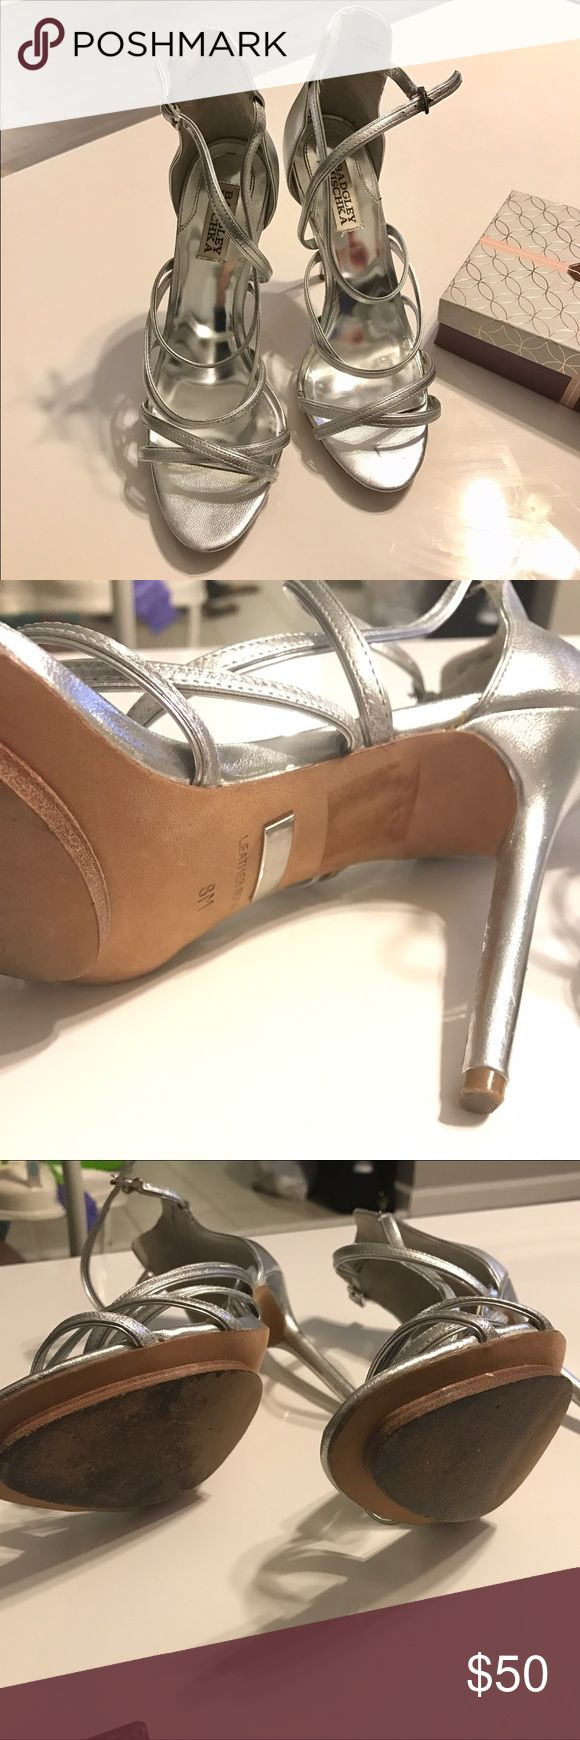 Badgley Mischka Silver Strappy Sandals Great heels for a wedding or special event. Strappy design. Leather sole. Badgley Mischka Shoes Sandals